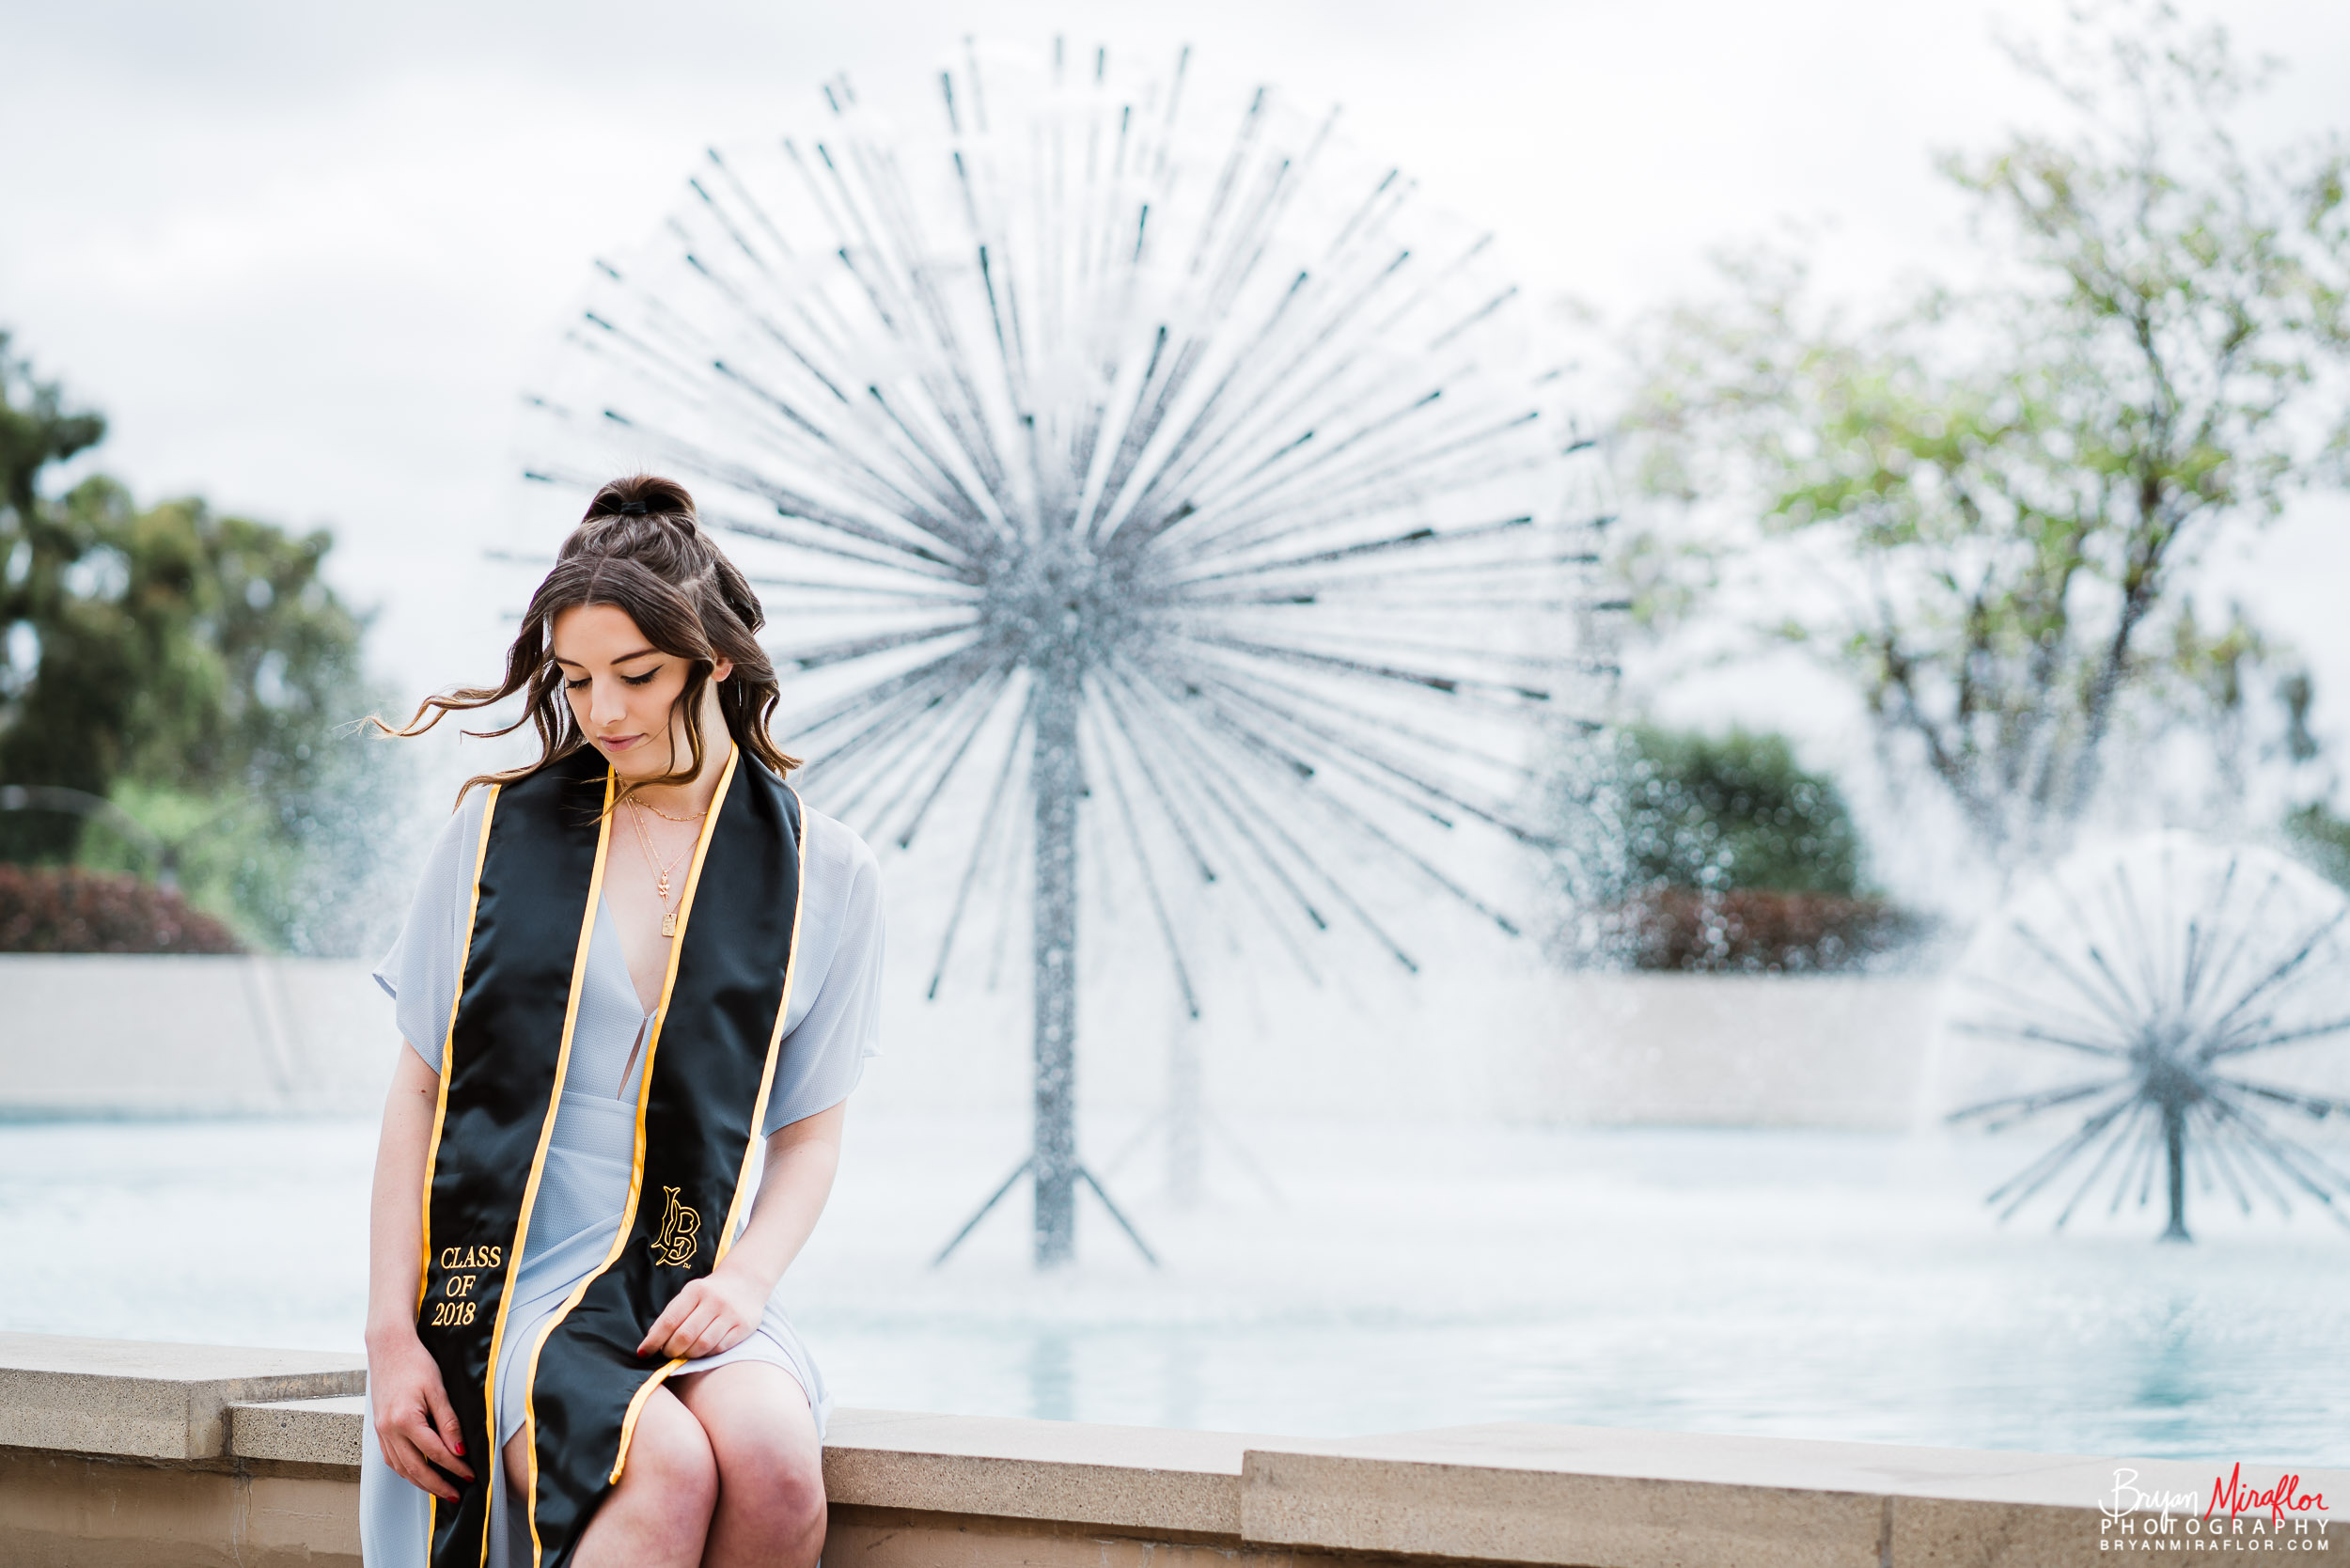 Bryan-Miraflor-Photography-CSULB-Long-Beach-Corinne-Grad-Photos-20180521-012.JPG